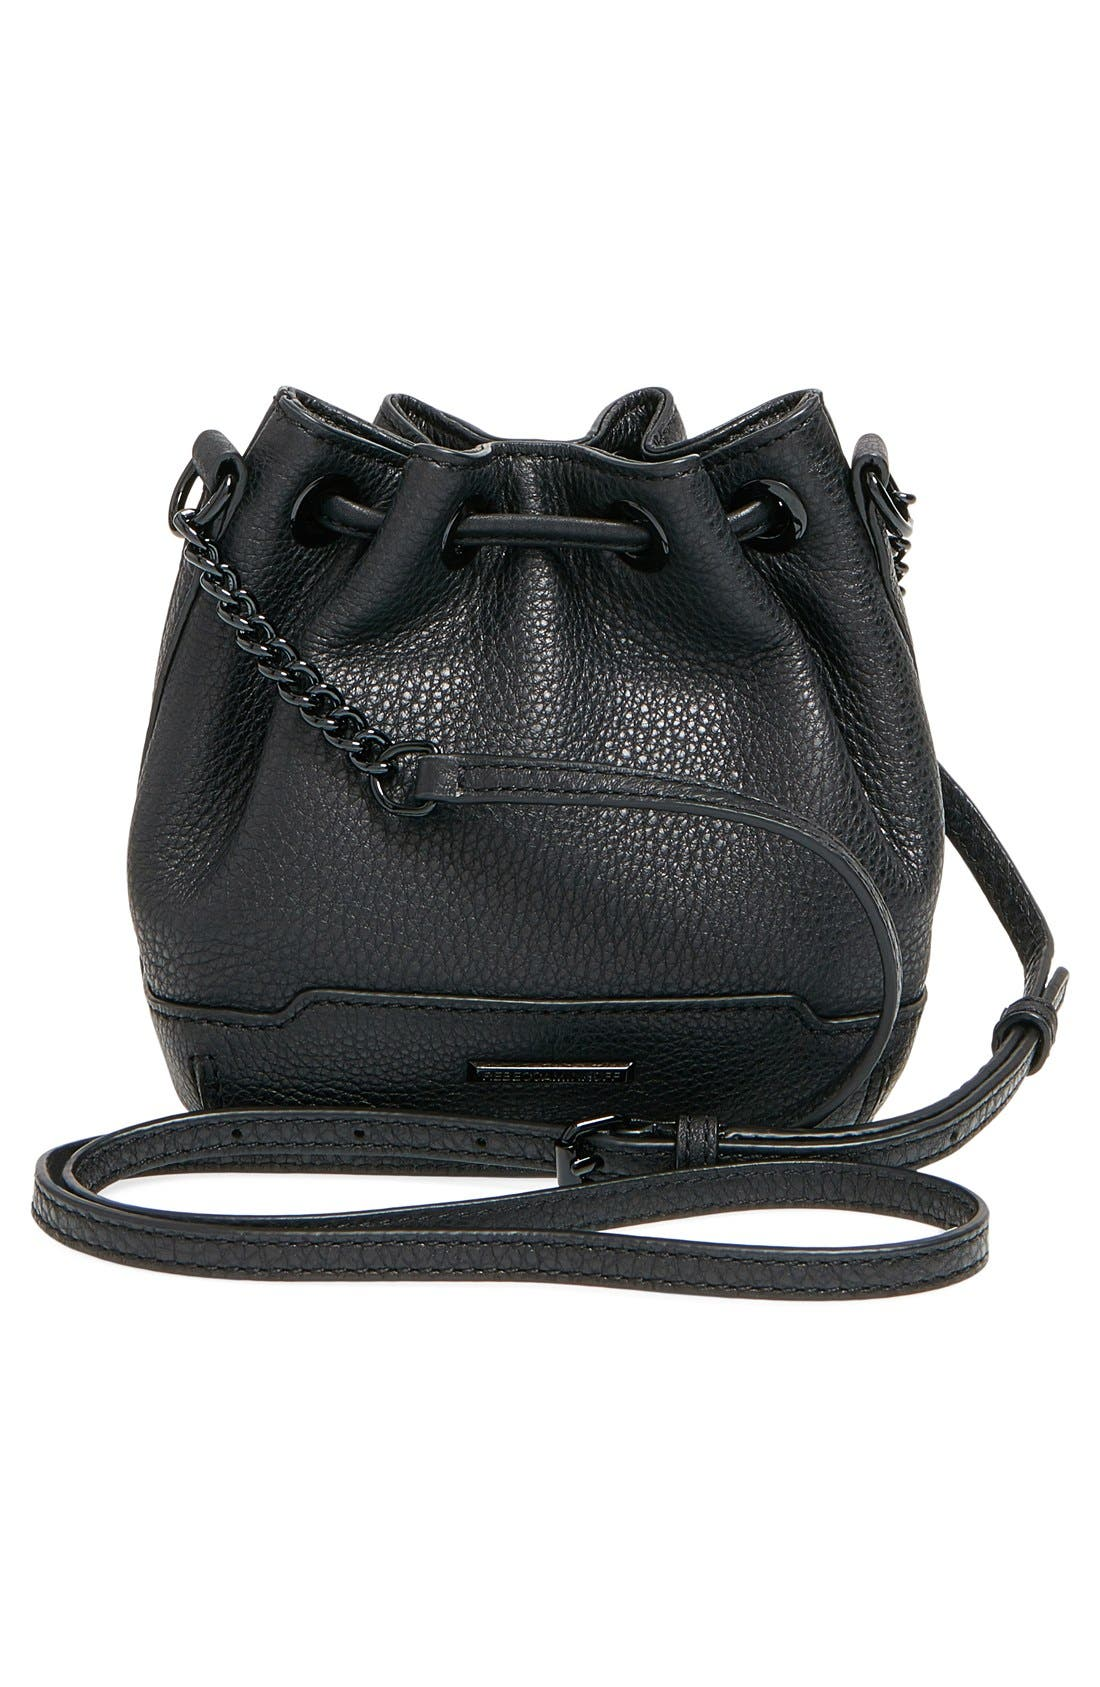 'Micro Lexi' Bucket Bag,                             Alternate thumbnail 5, color,                             001